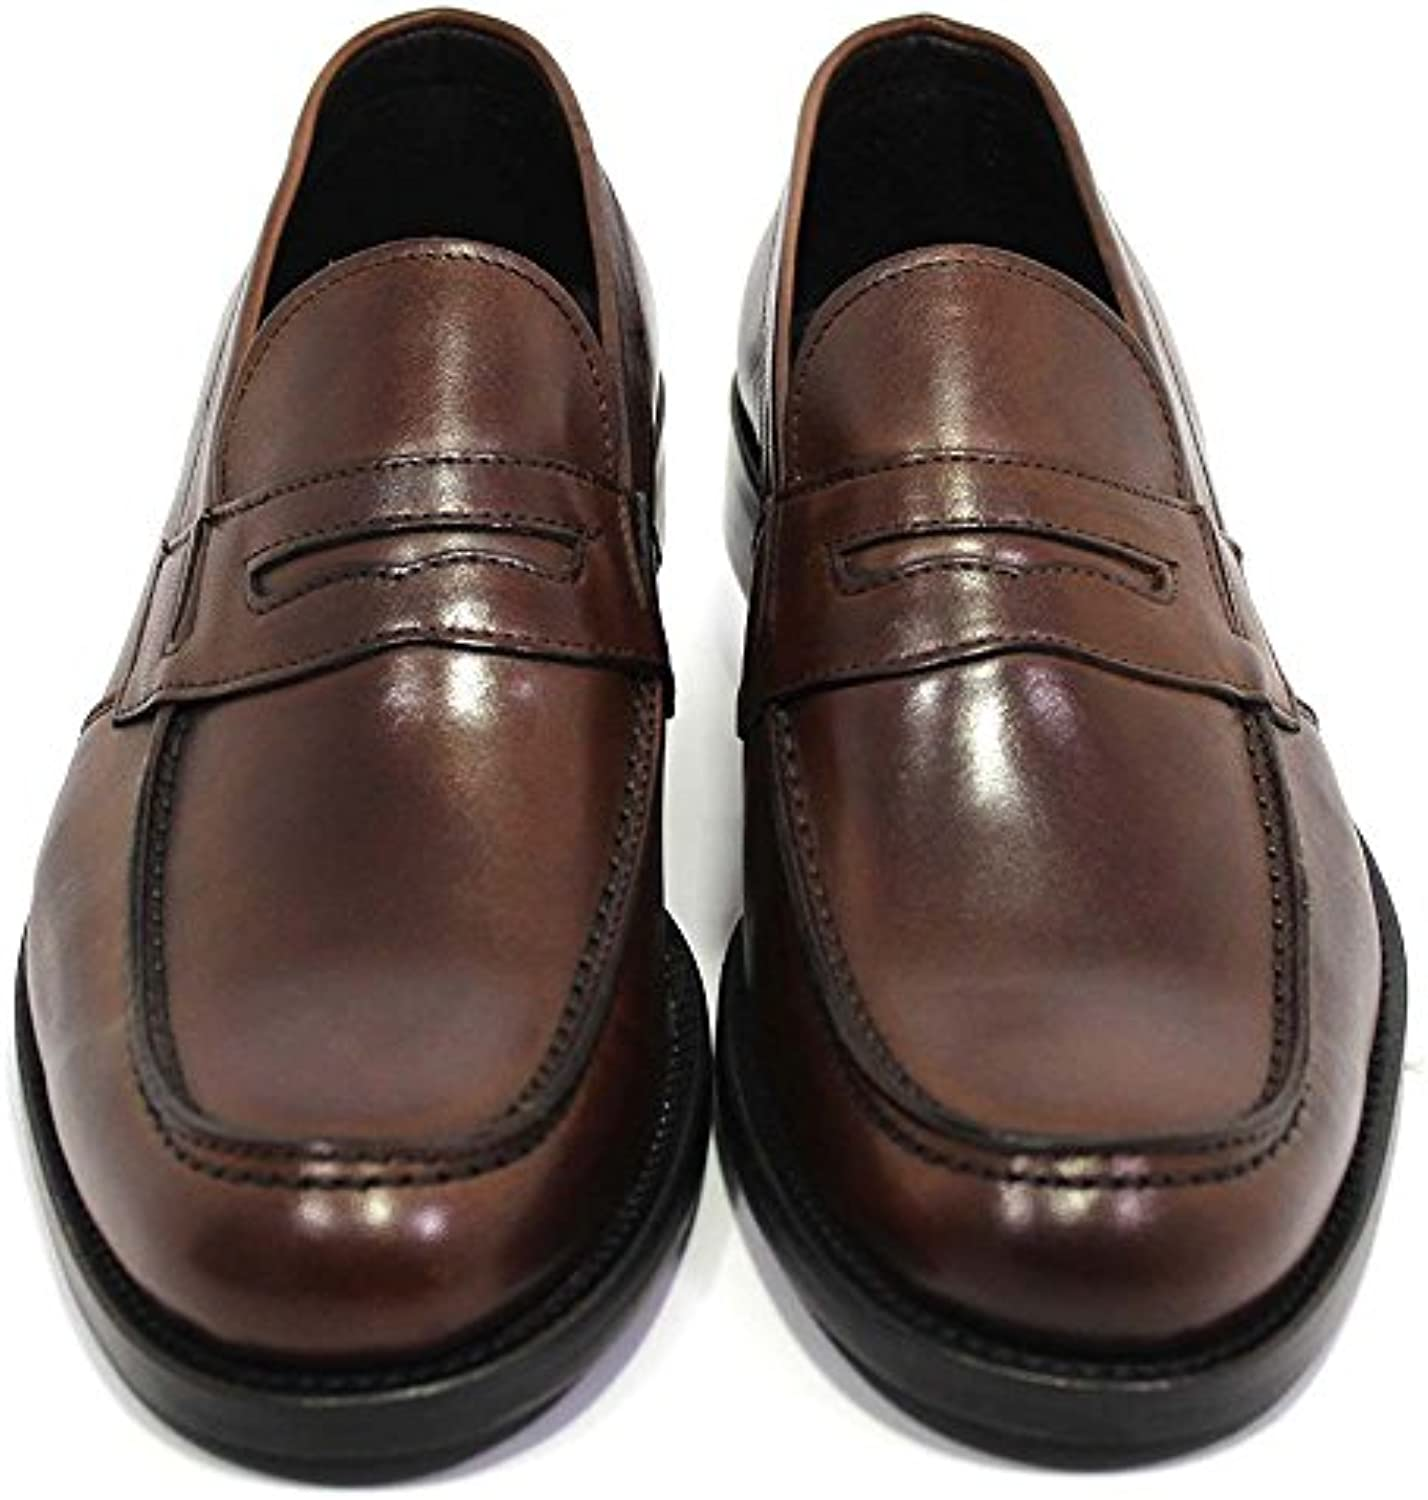 Zapatos de Hombre Made In Italy Mod. Loafers Mazzini Brown TG 39